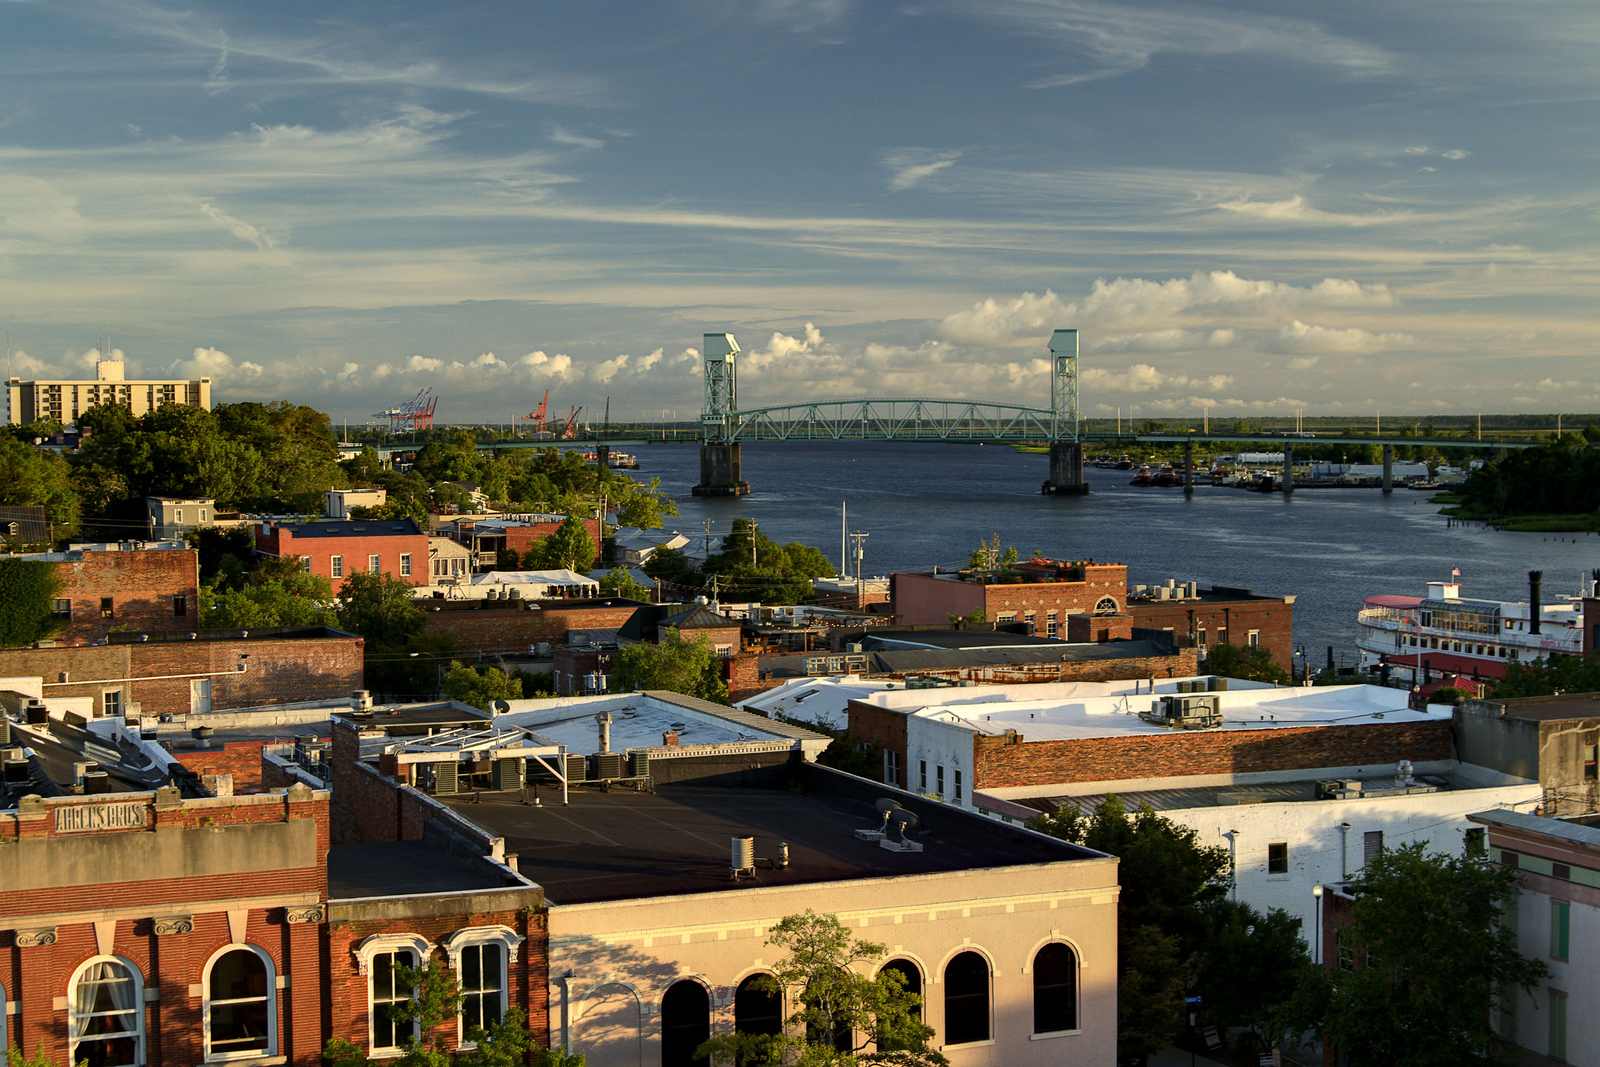 A view along the rooftops of buildings in the historic downtown district toward the Cape Fear Memorial Bridge in Wilmington, NC on Sunday, July 13, 2014. Copyright 2014 Jason Barnette